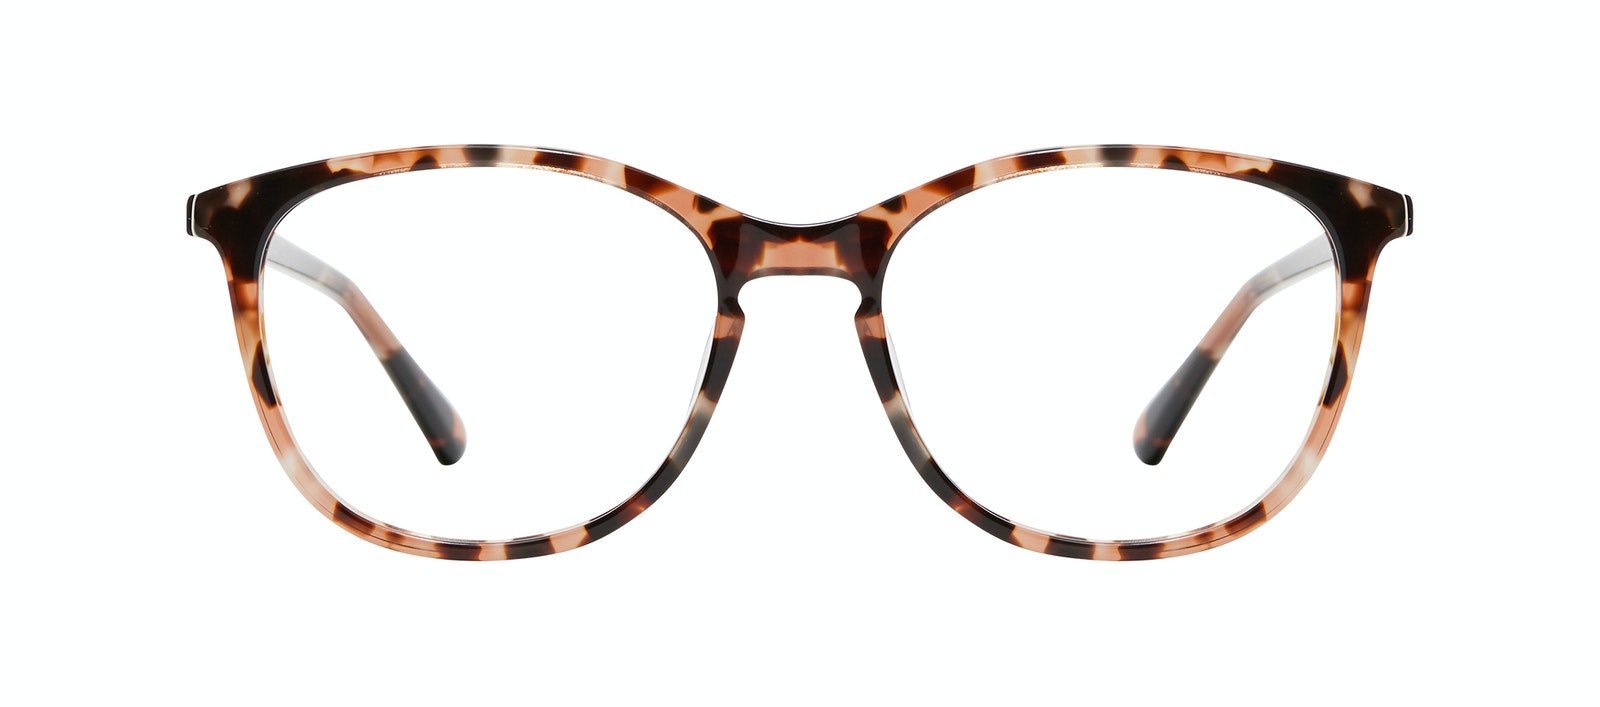 Affordable Fashion Glasses Rectangle Square Round Eyeglasses Women Nadine M Pink Tortoise Front